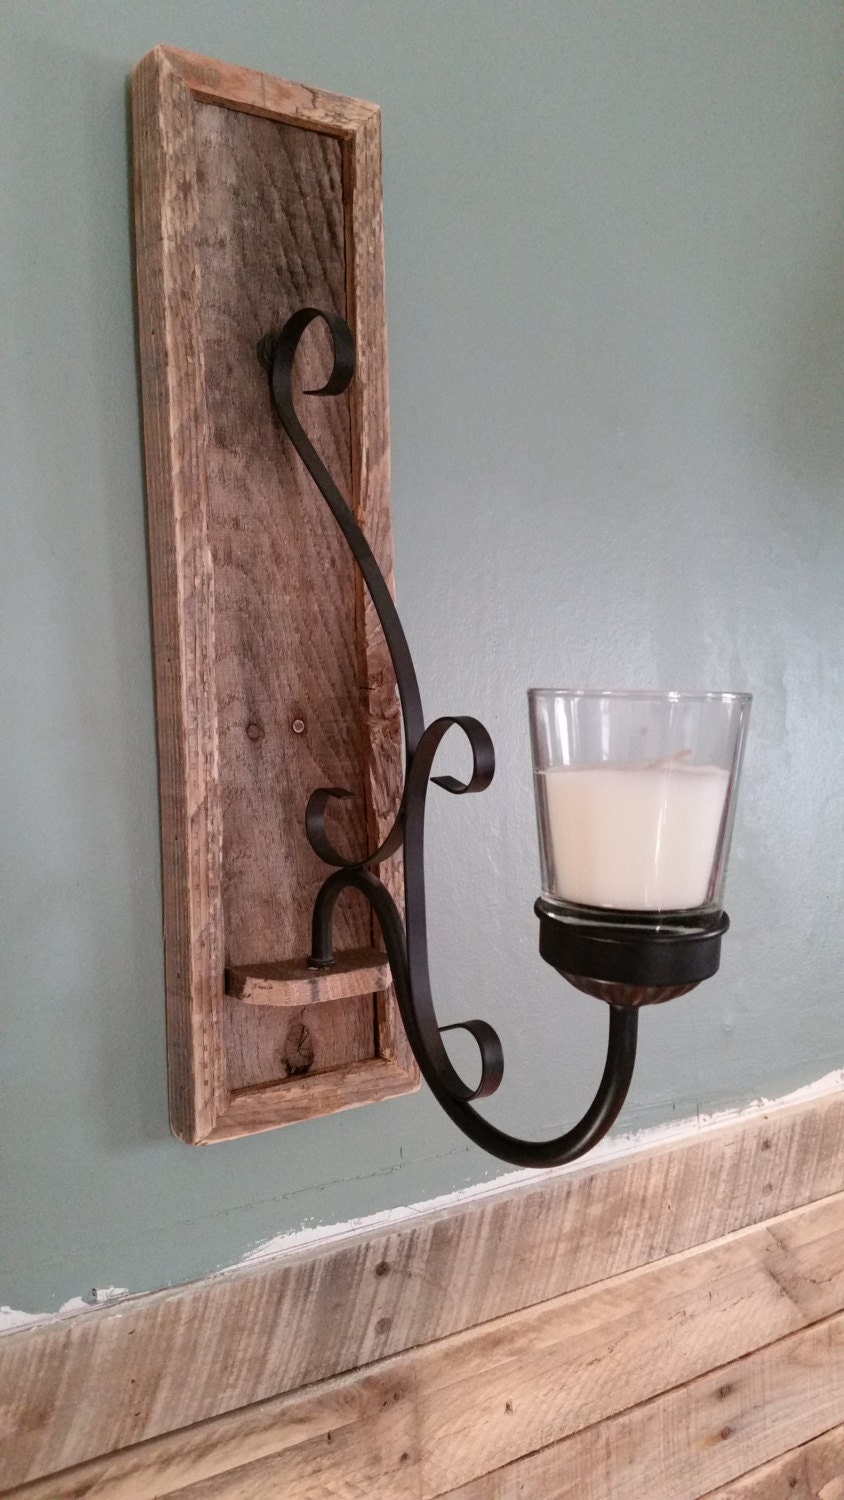 repurposed barn wood candle wall sconce by AHIsalvage on Etsy